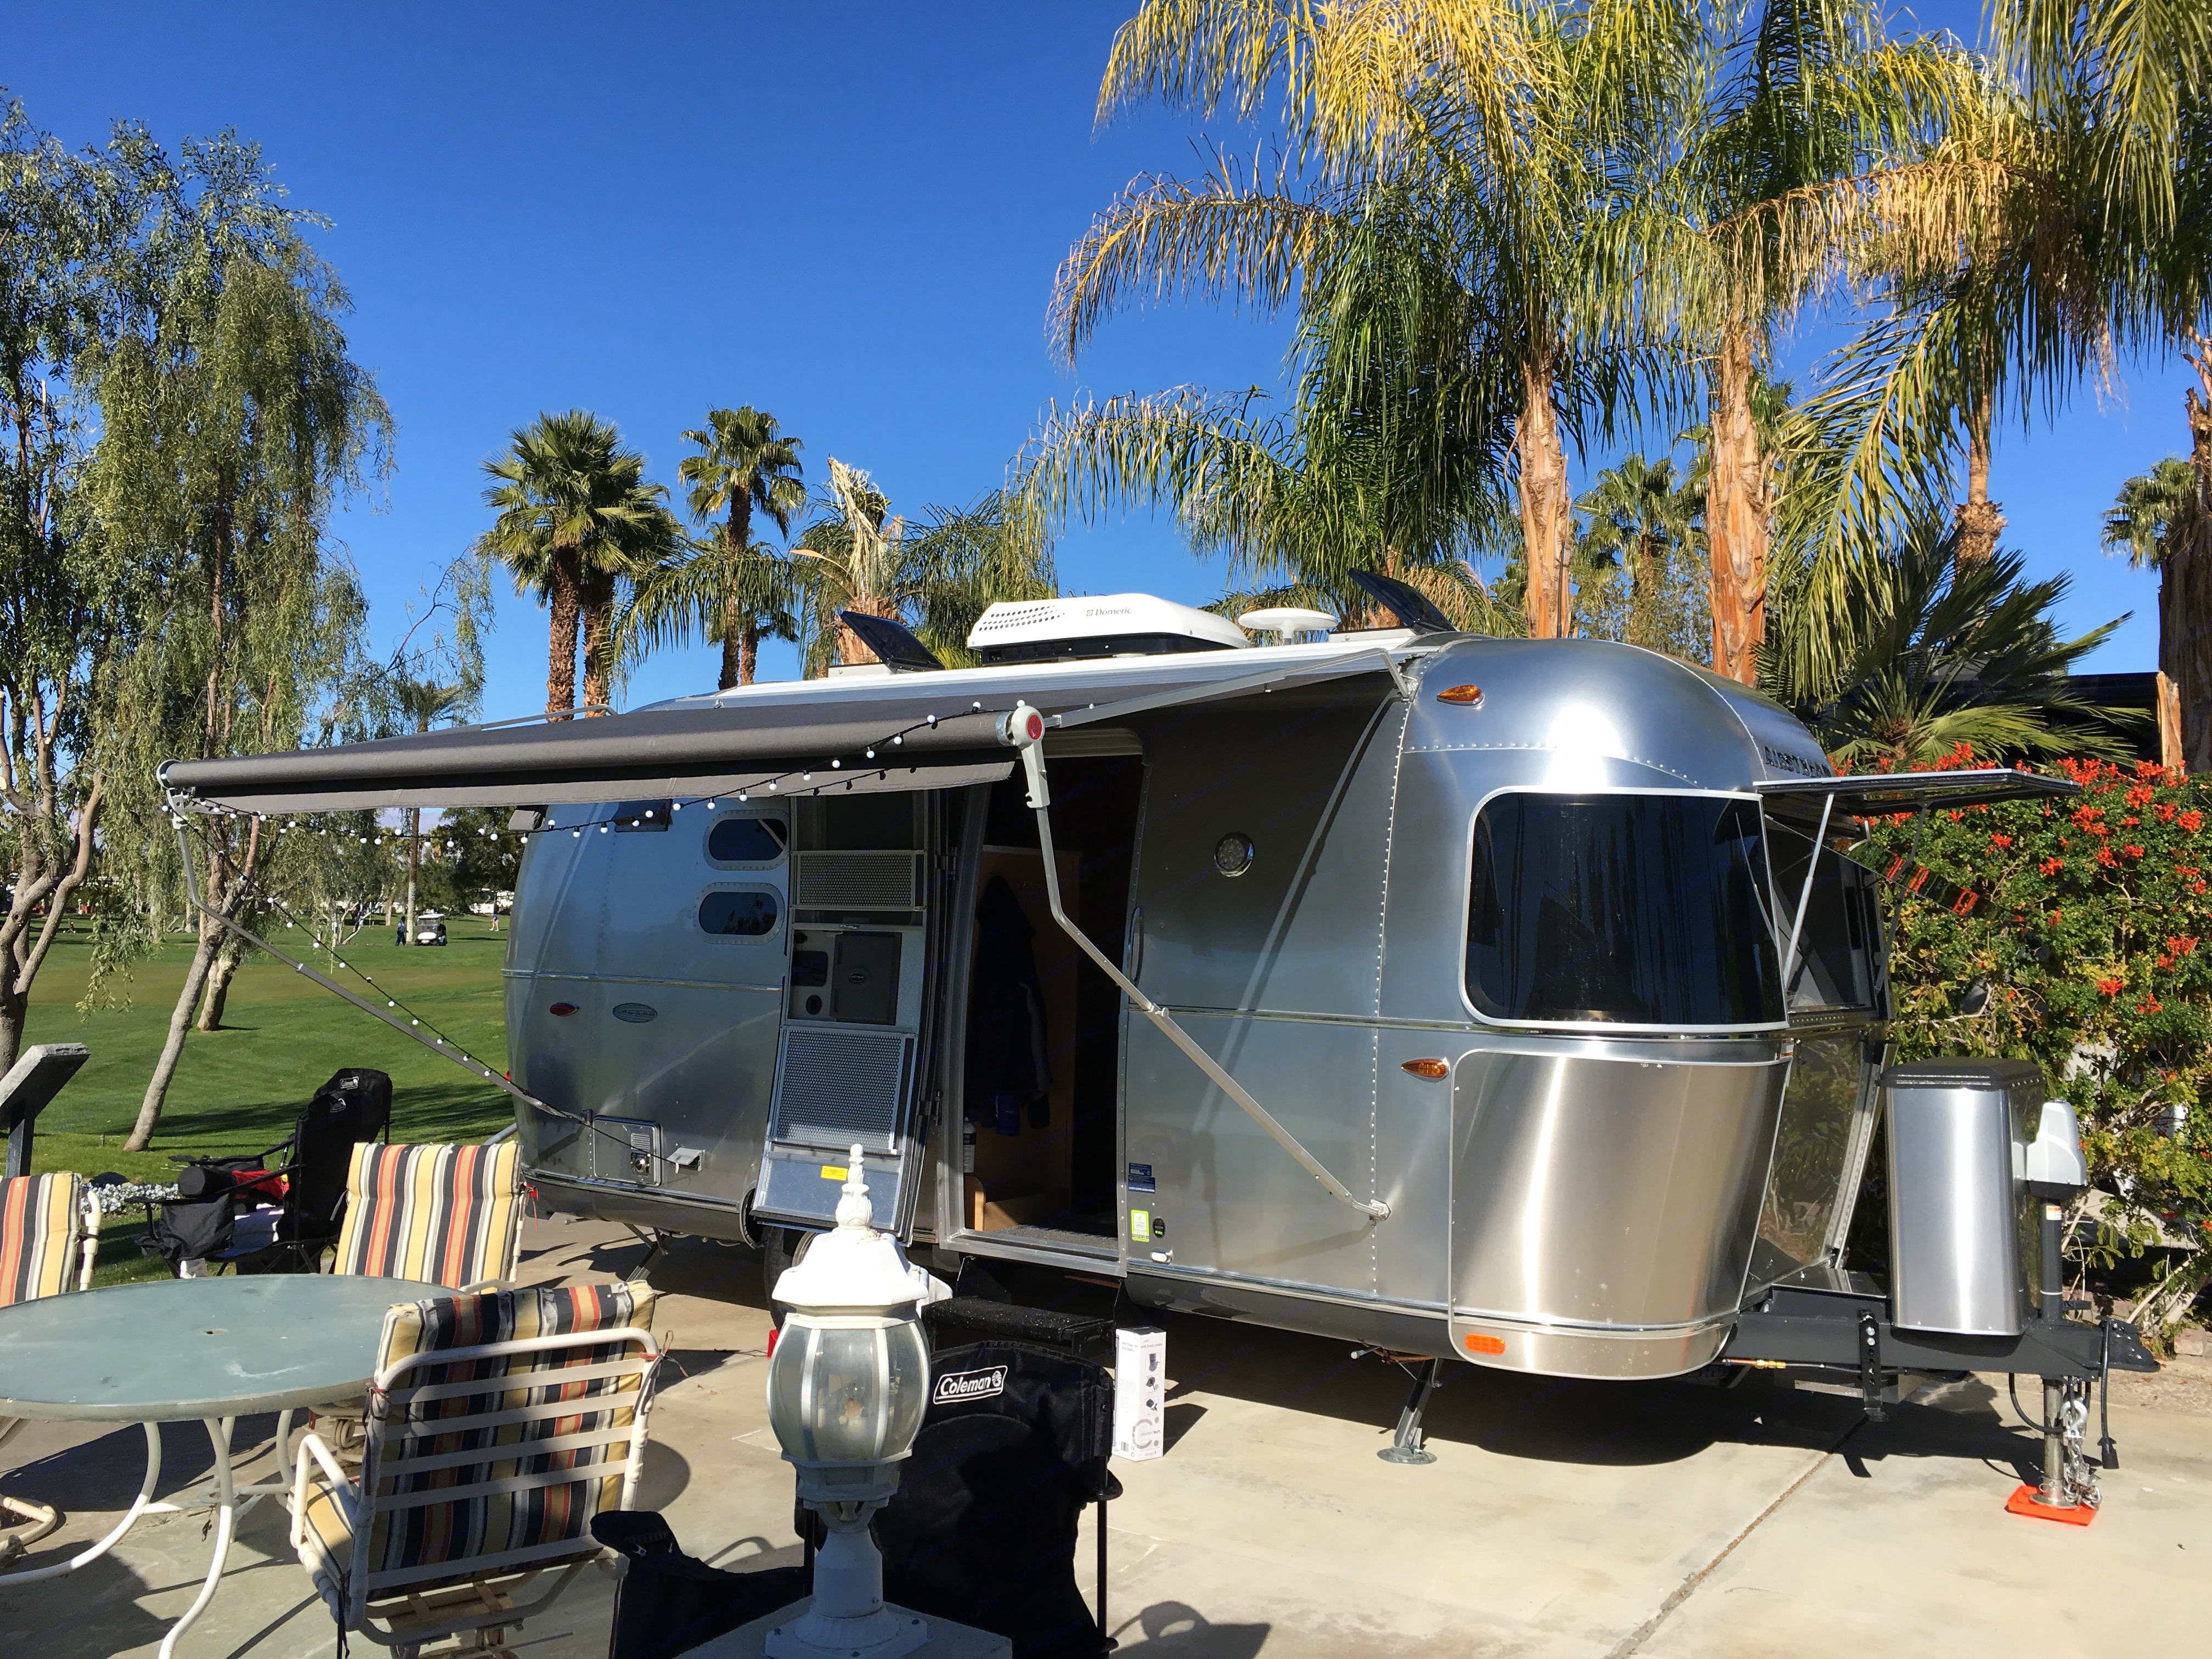 All the comforts of Home to be able to hook-up to full, water sewer, electric, cable, etc like this fun spot in Palm Springs. Airstream Flying Cloud 2016